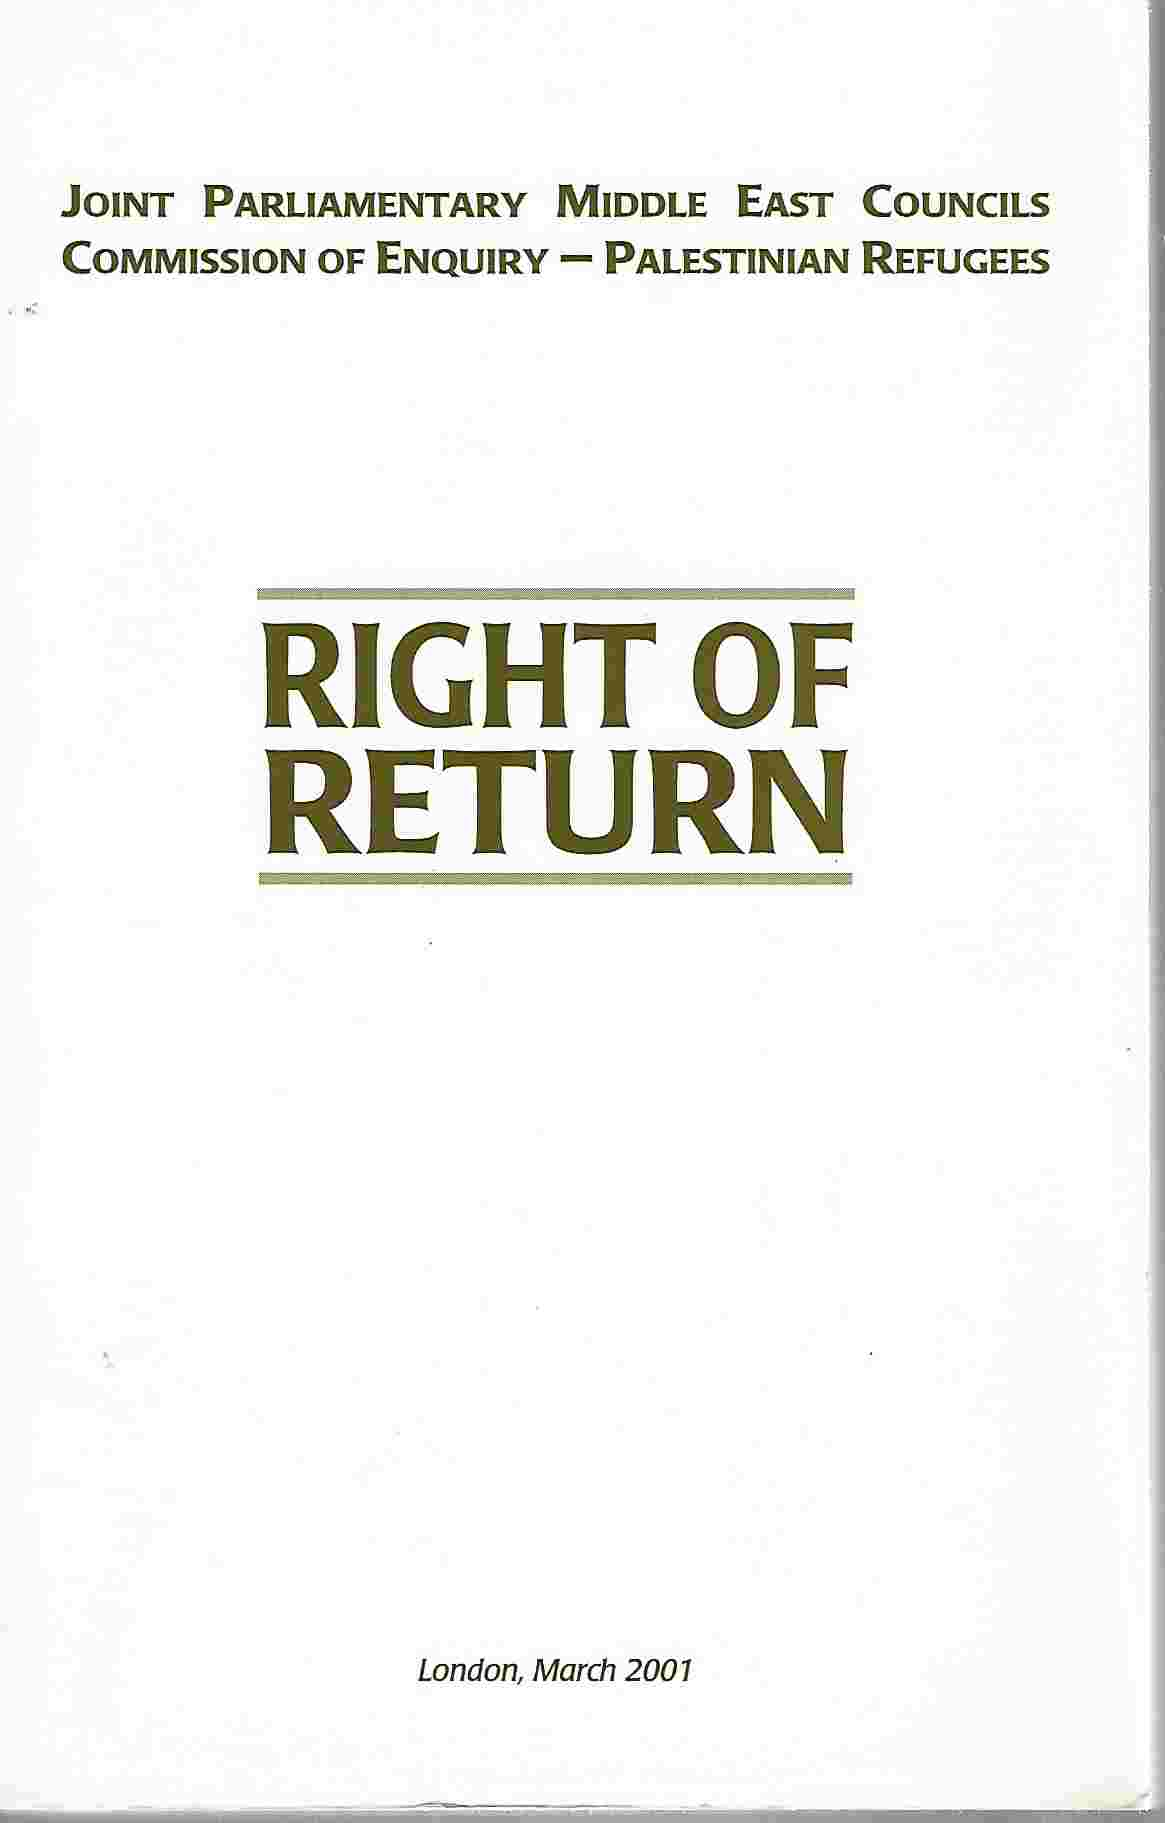 Image for Right Of Return Joint Parliamentary Middle East Councils Commission of Enquiry - Palestinian Refugees